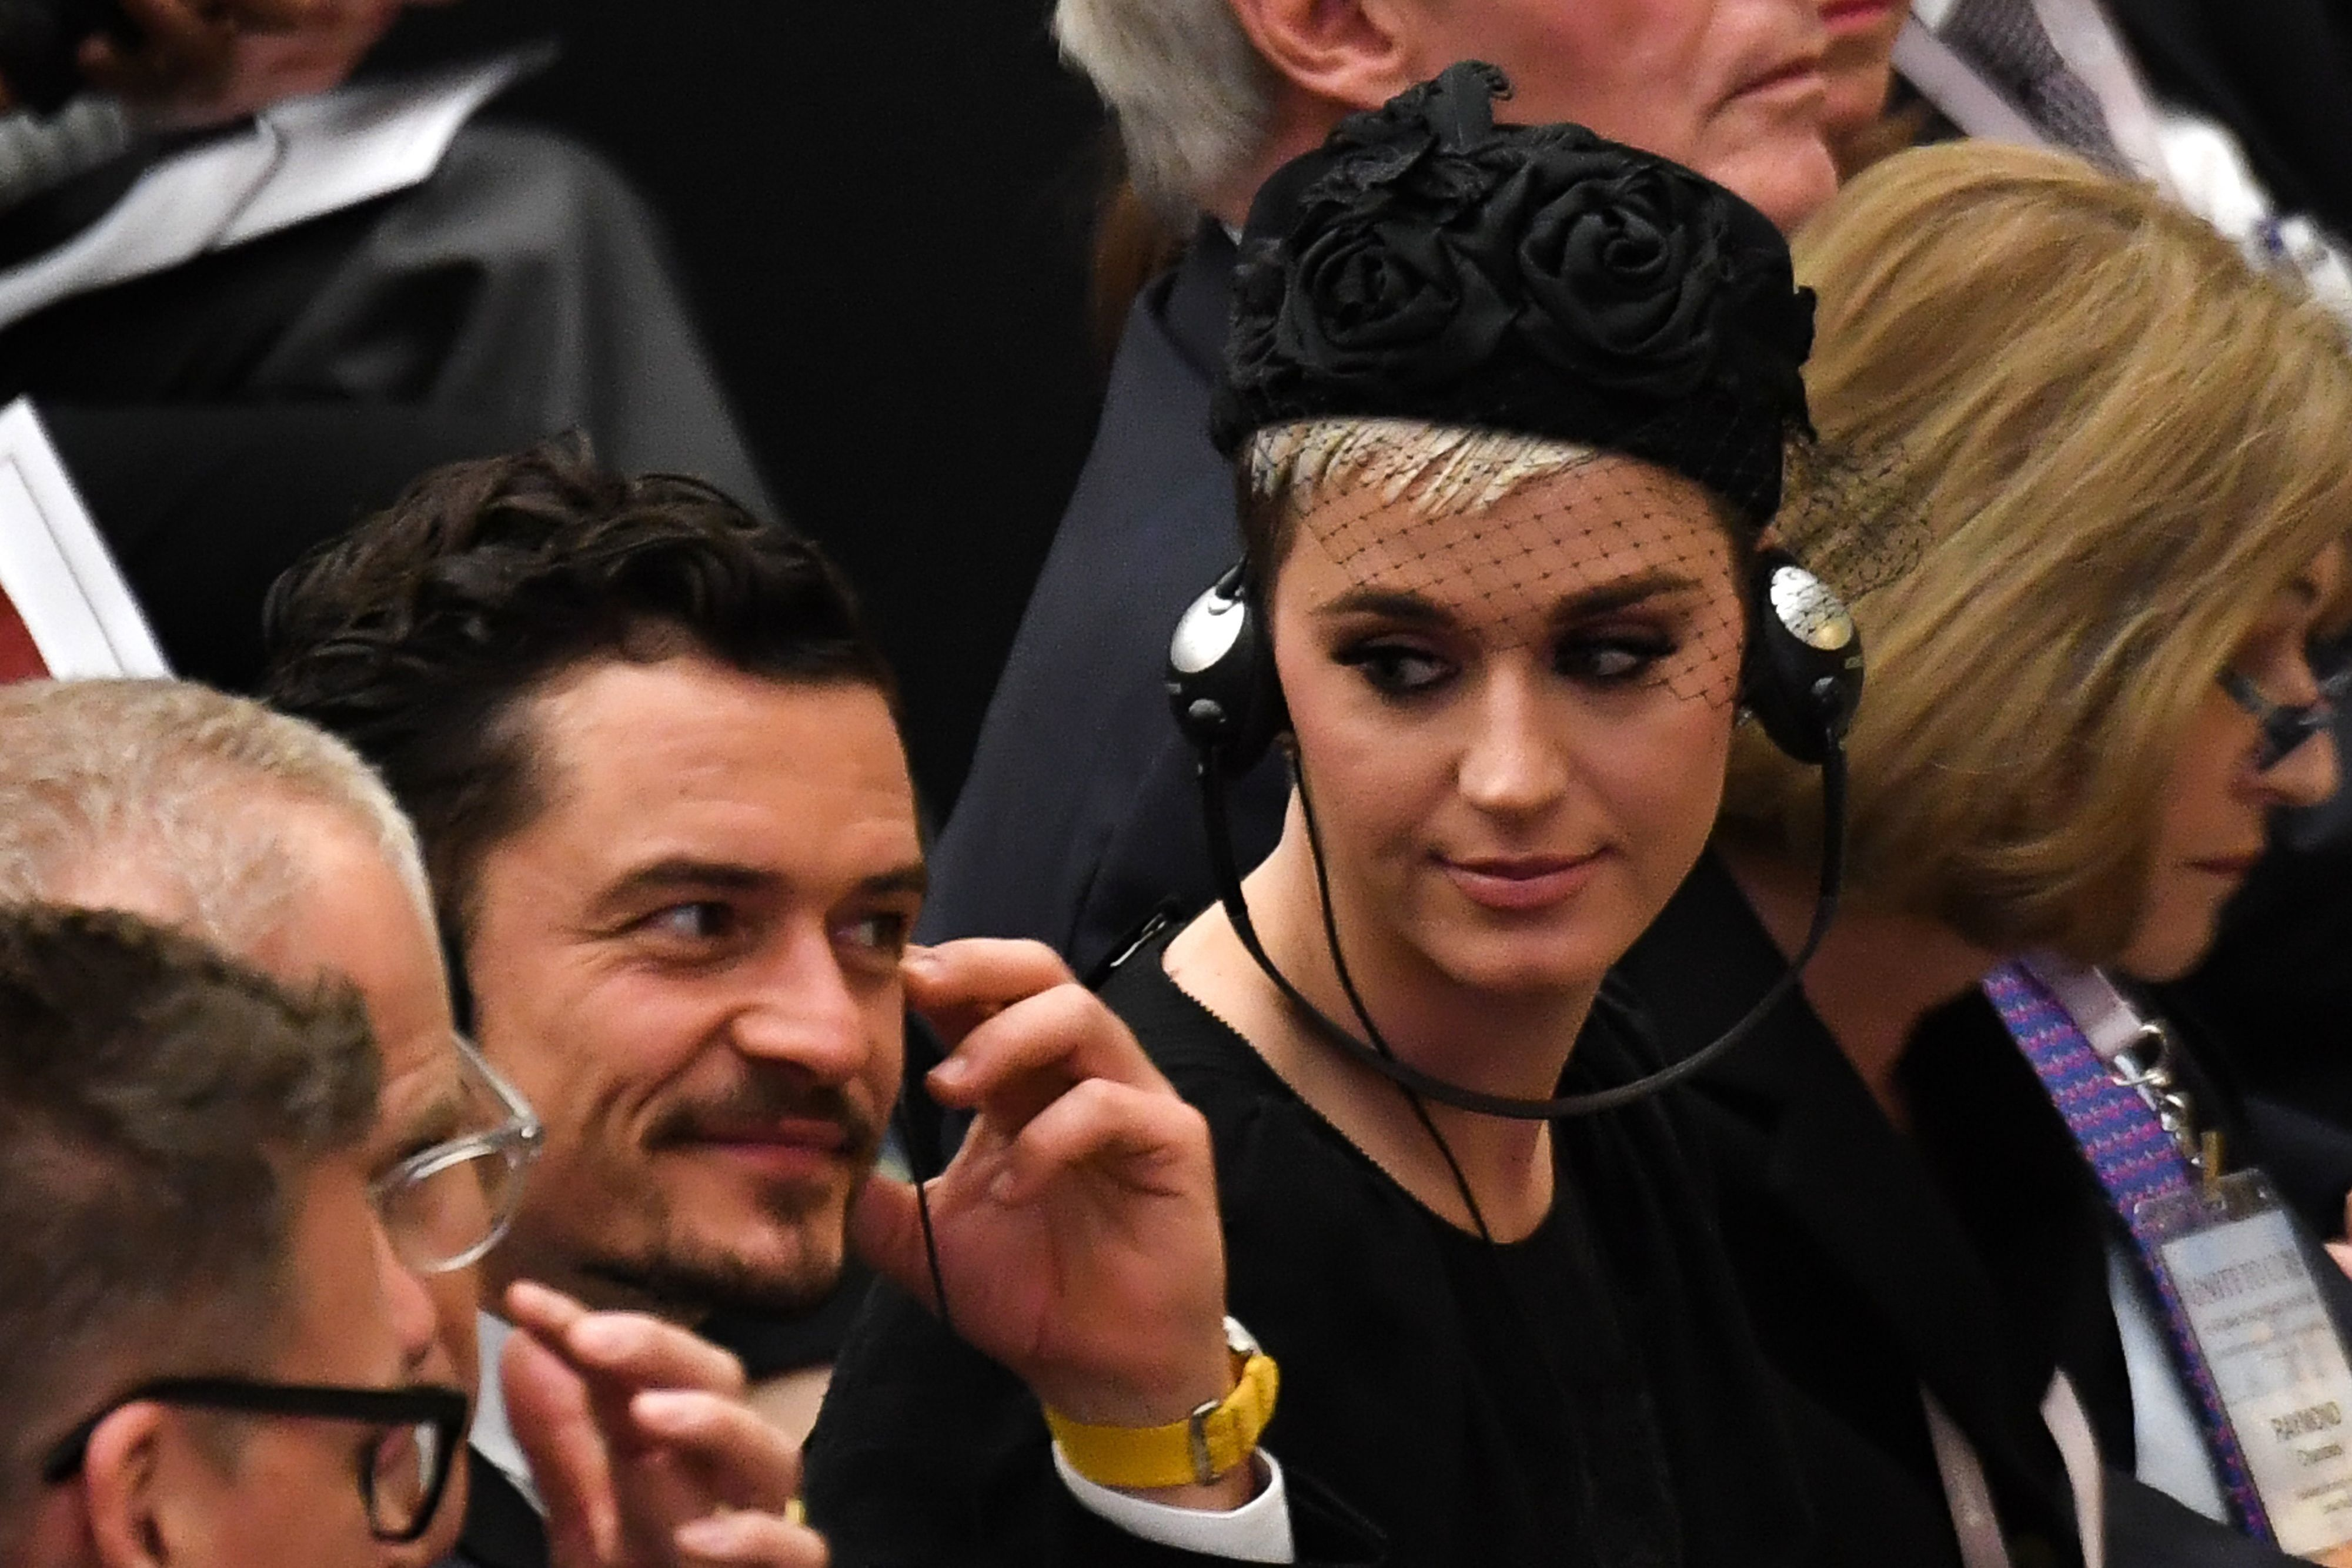 Katy Perry Meets Pope Francis, Speaks At Vatican